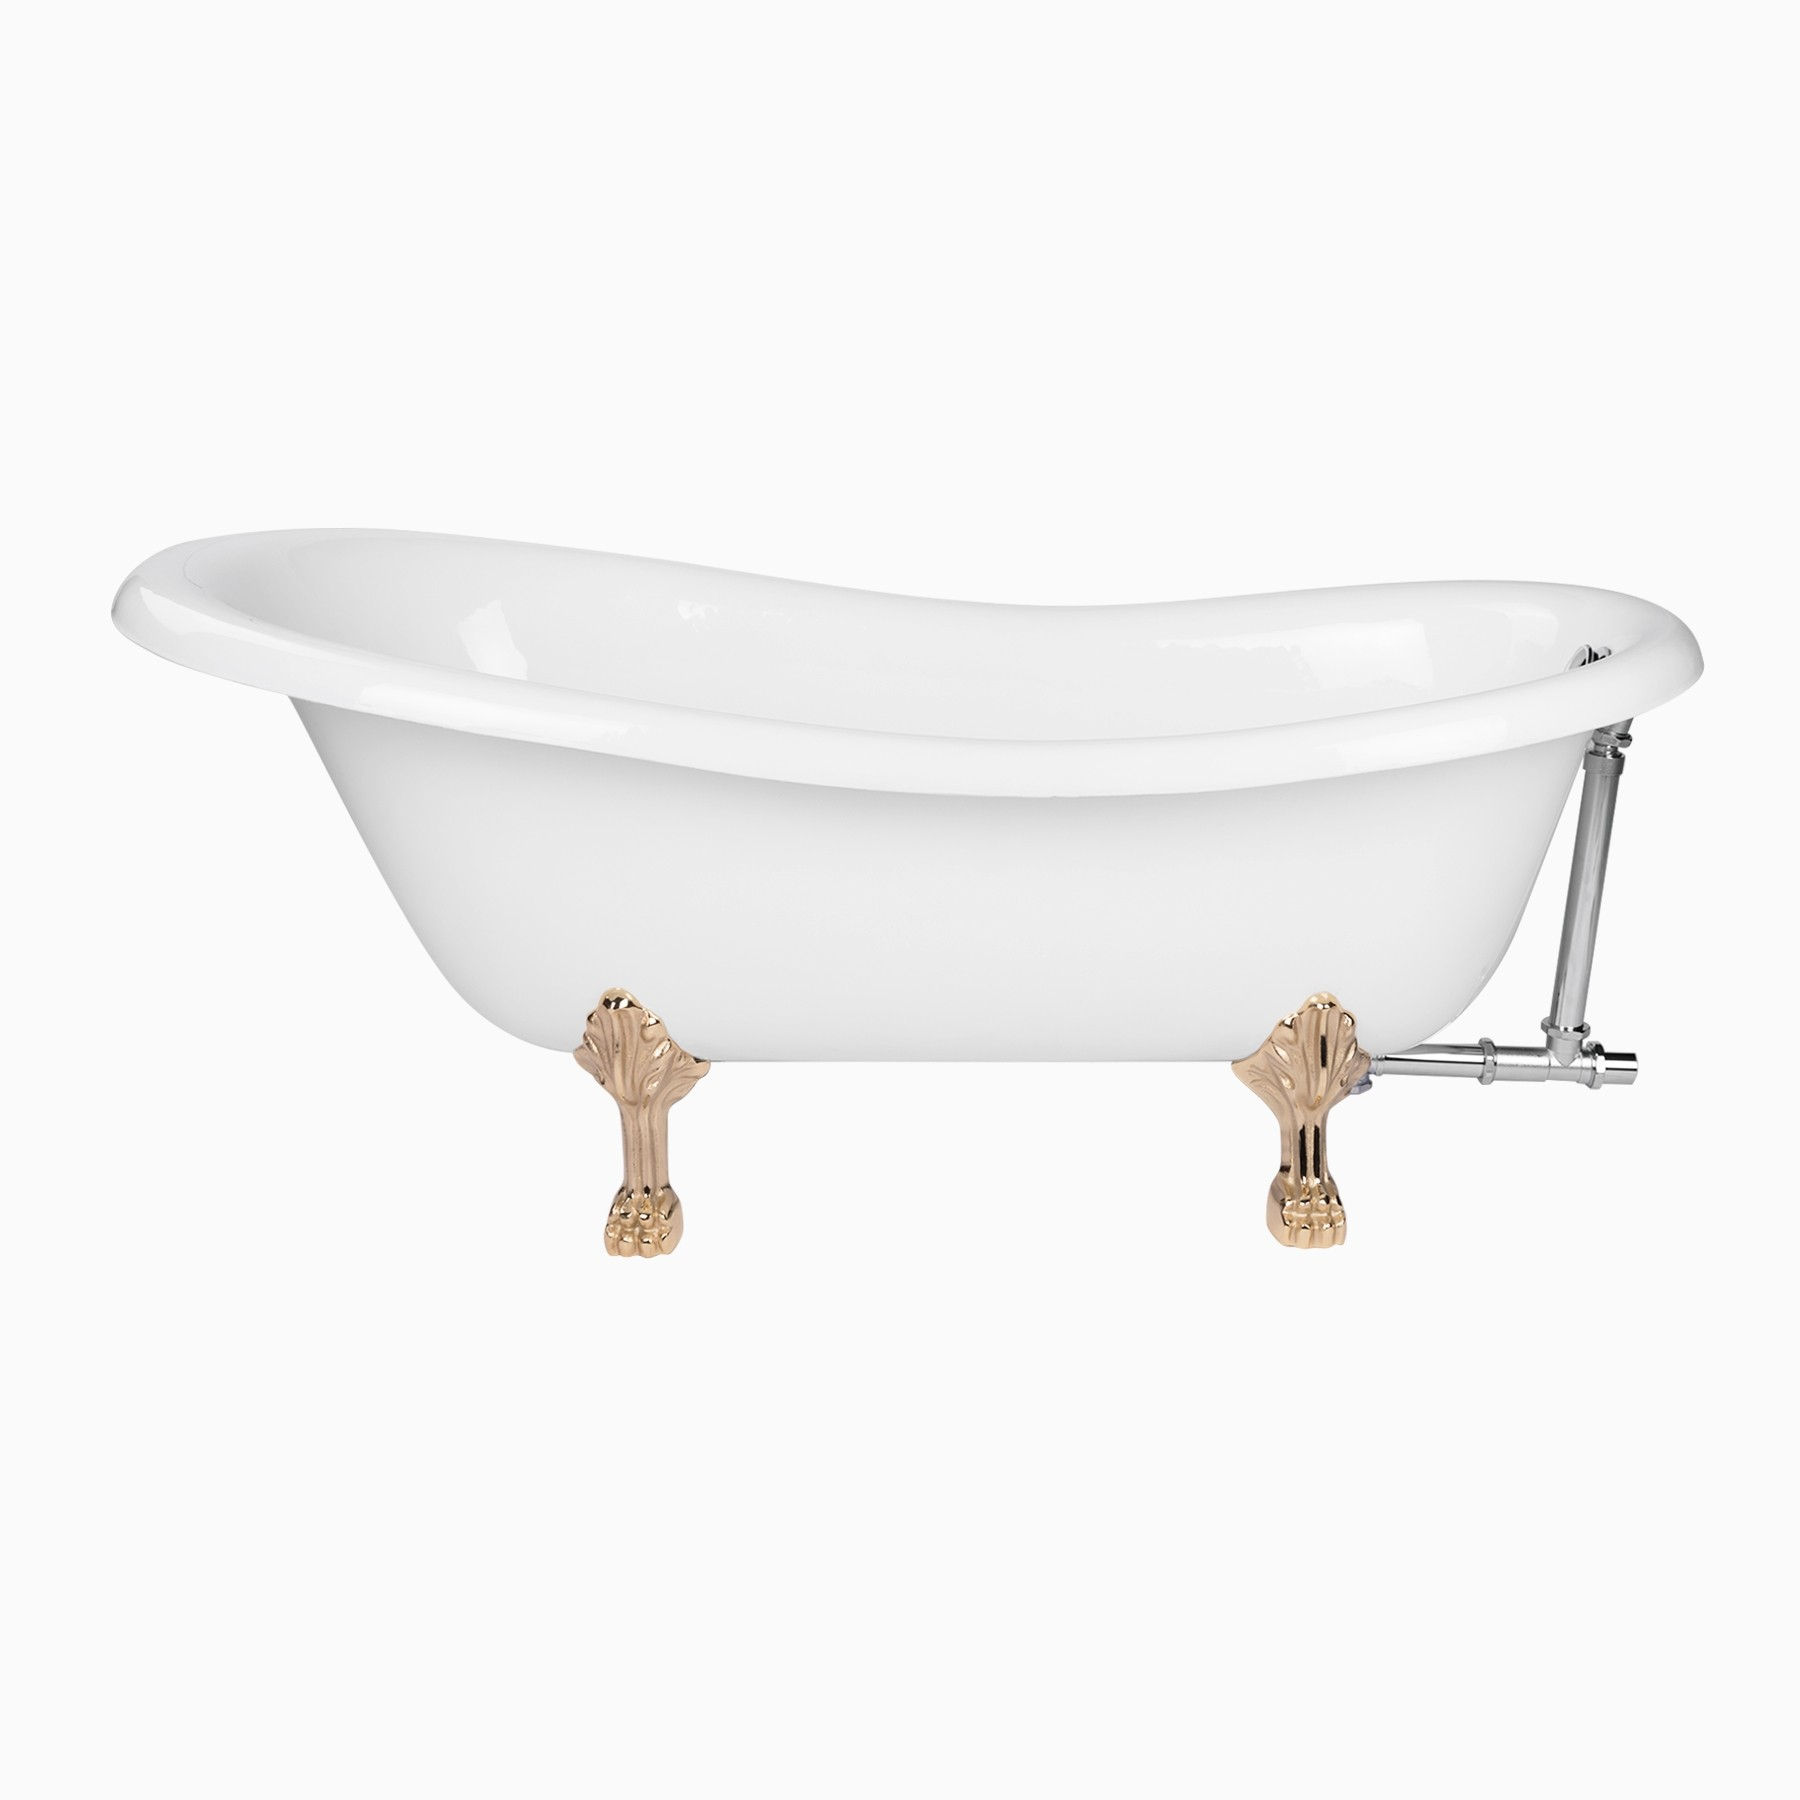 touch a tub bathtub tile throughout of bathroom floor image tubs your to claw cdbossington black white bear rounded perfect on and